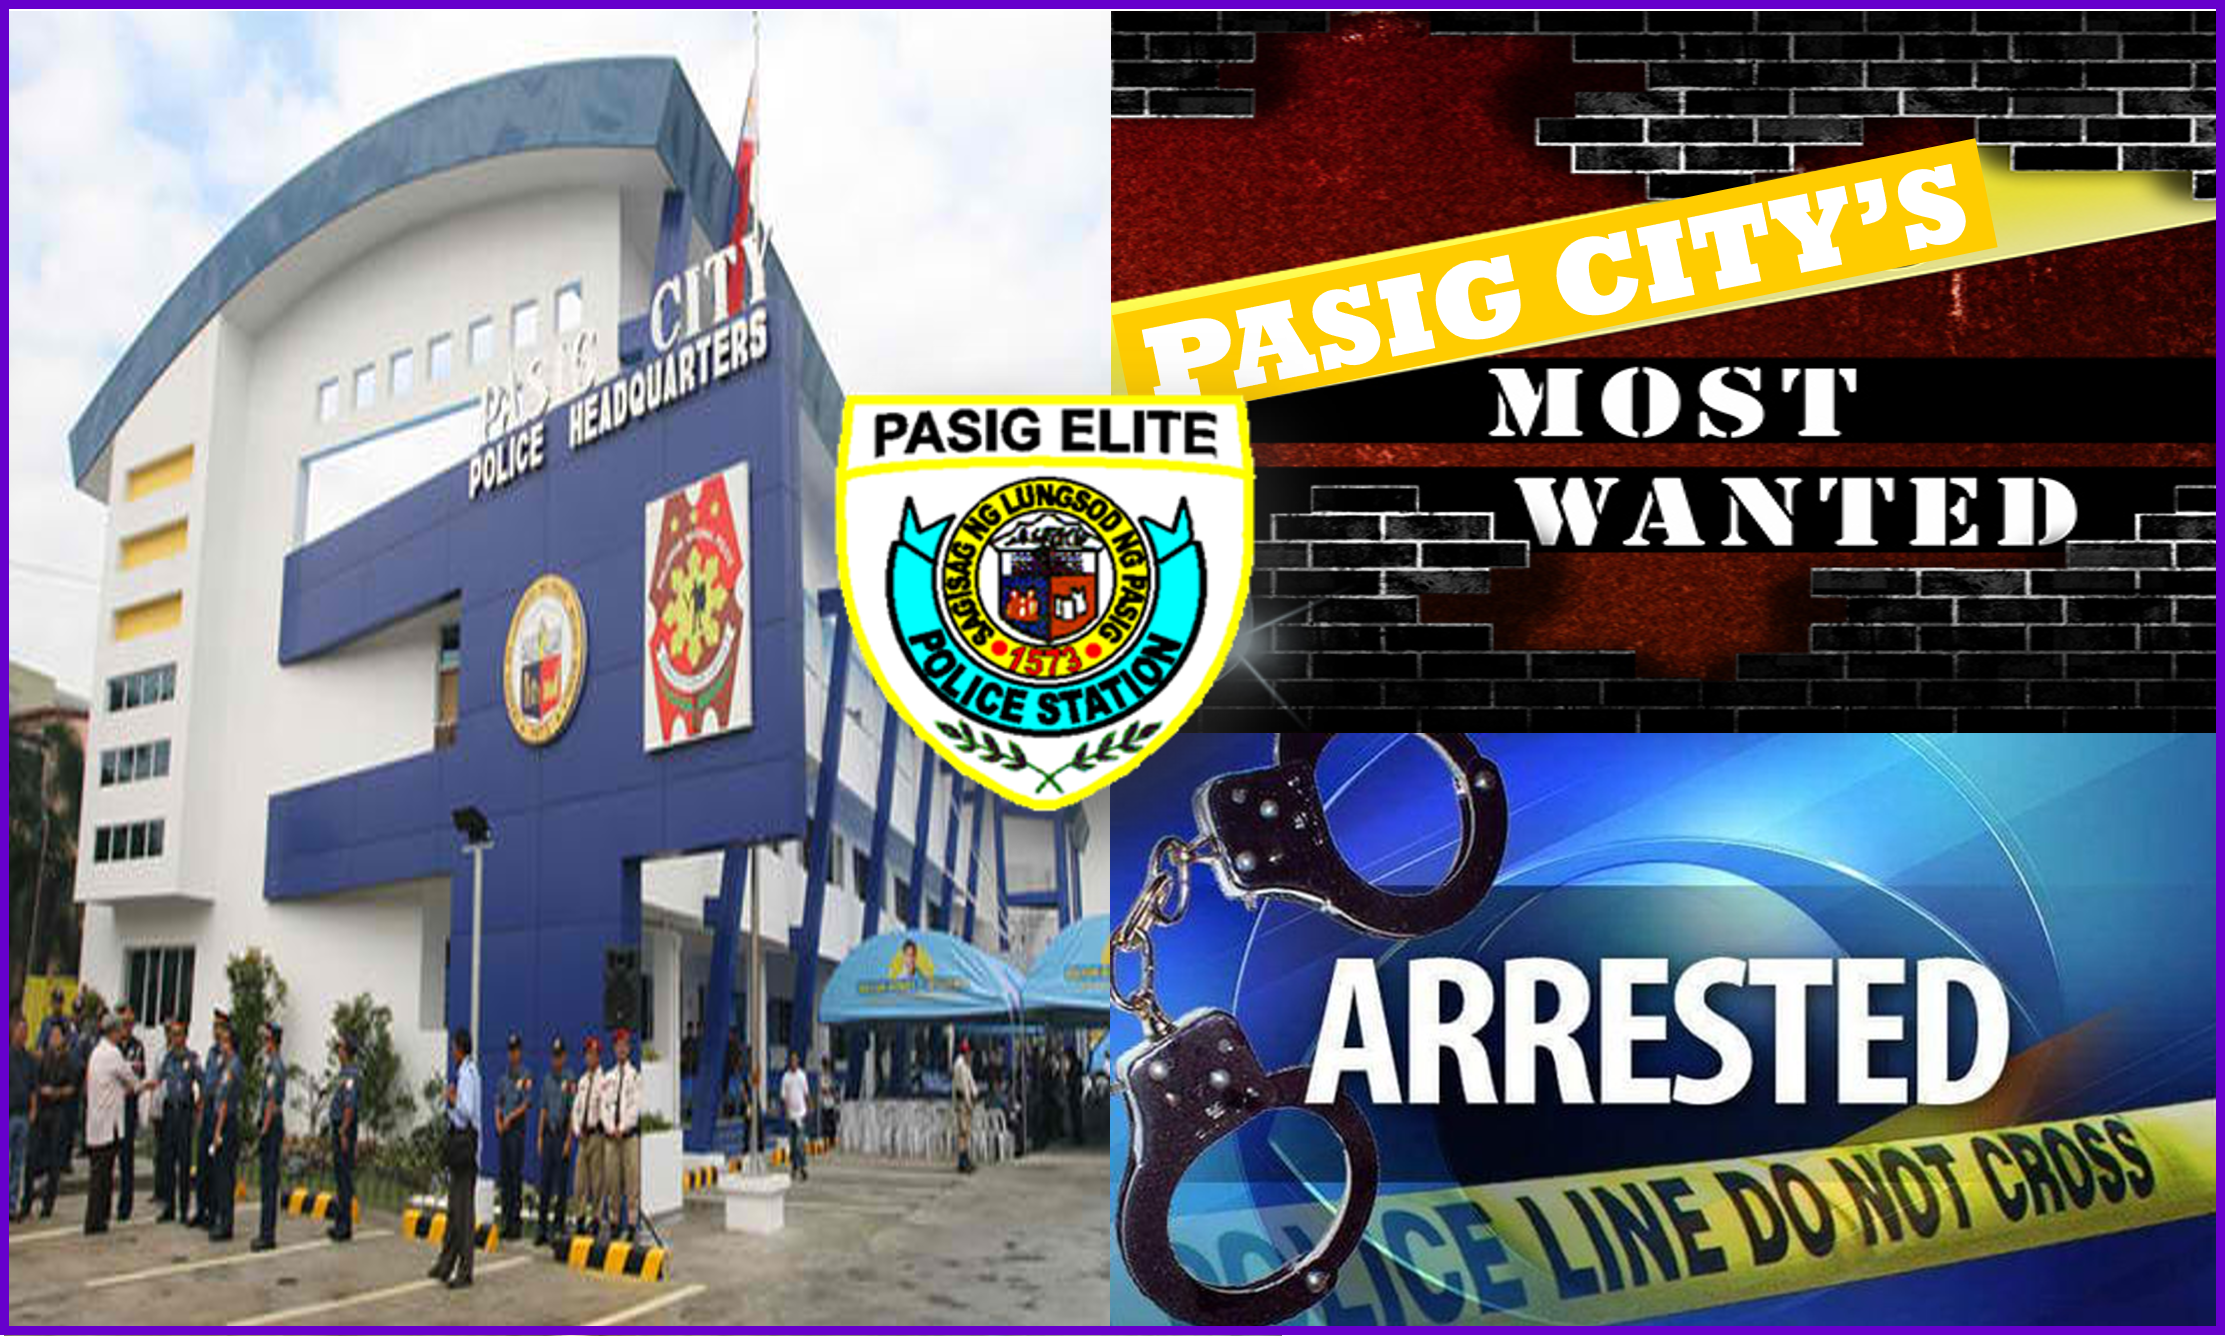 Pasig City's No. 9 in the Top 10 Most Wanted Persons Arrested